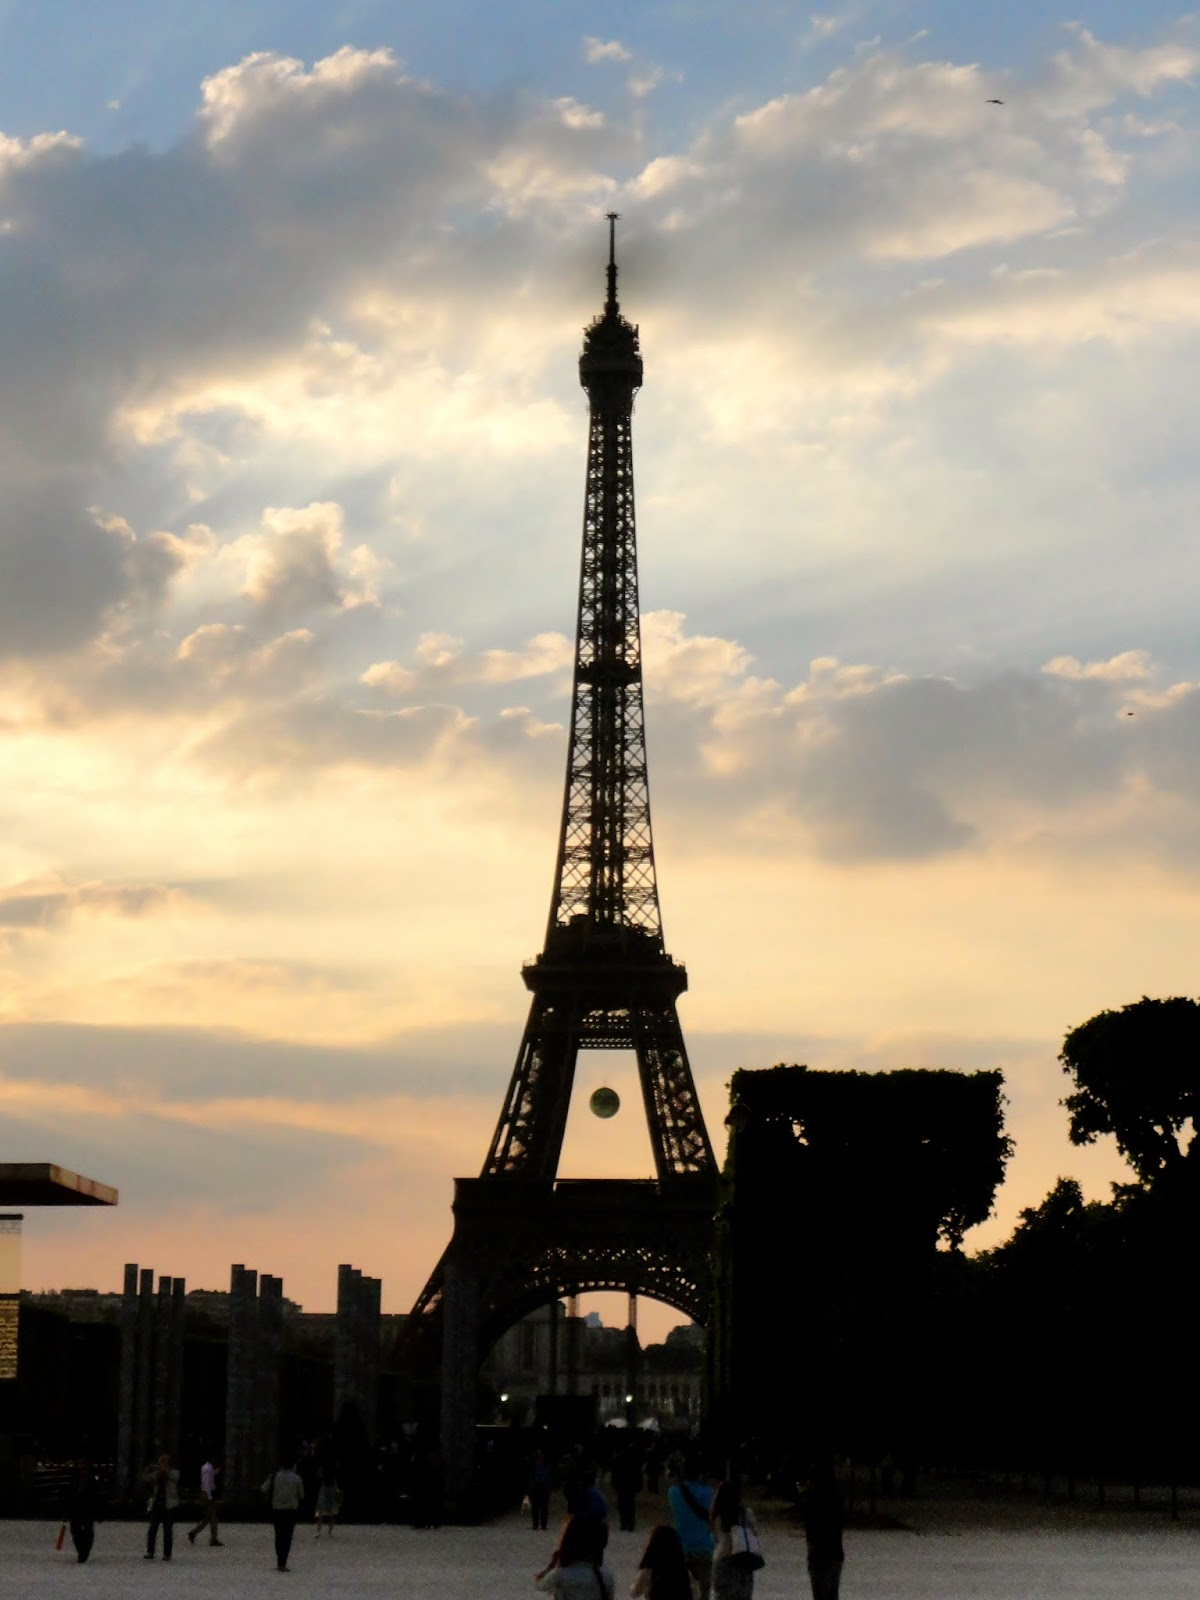 Eiffel Tower at sunset, Paris